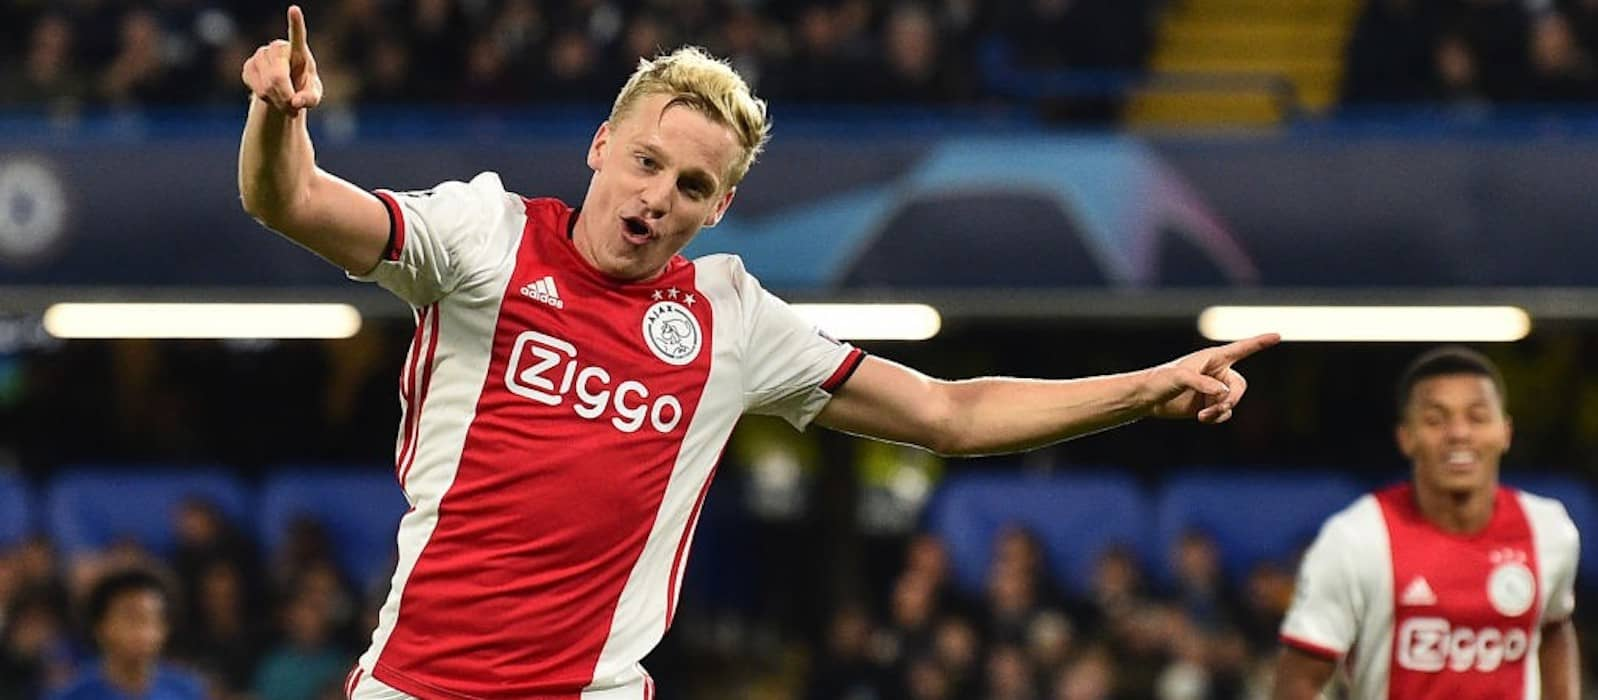 Ajax's Donny Van de Beek: Man United ready to pounce with cut-price offer